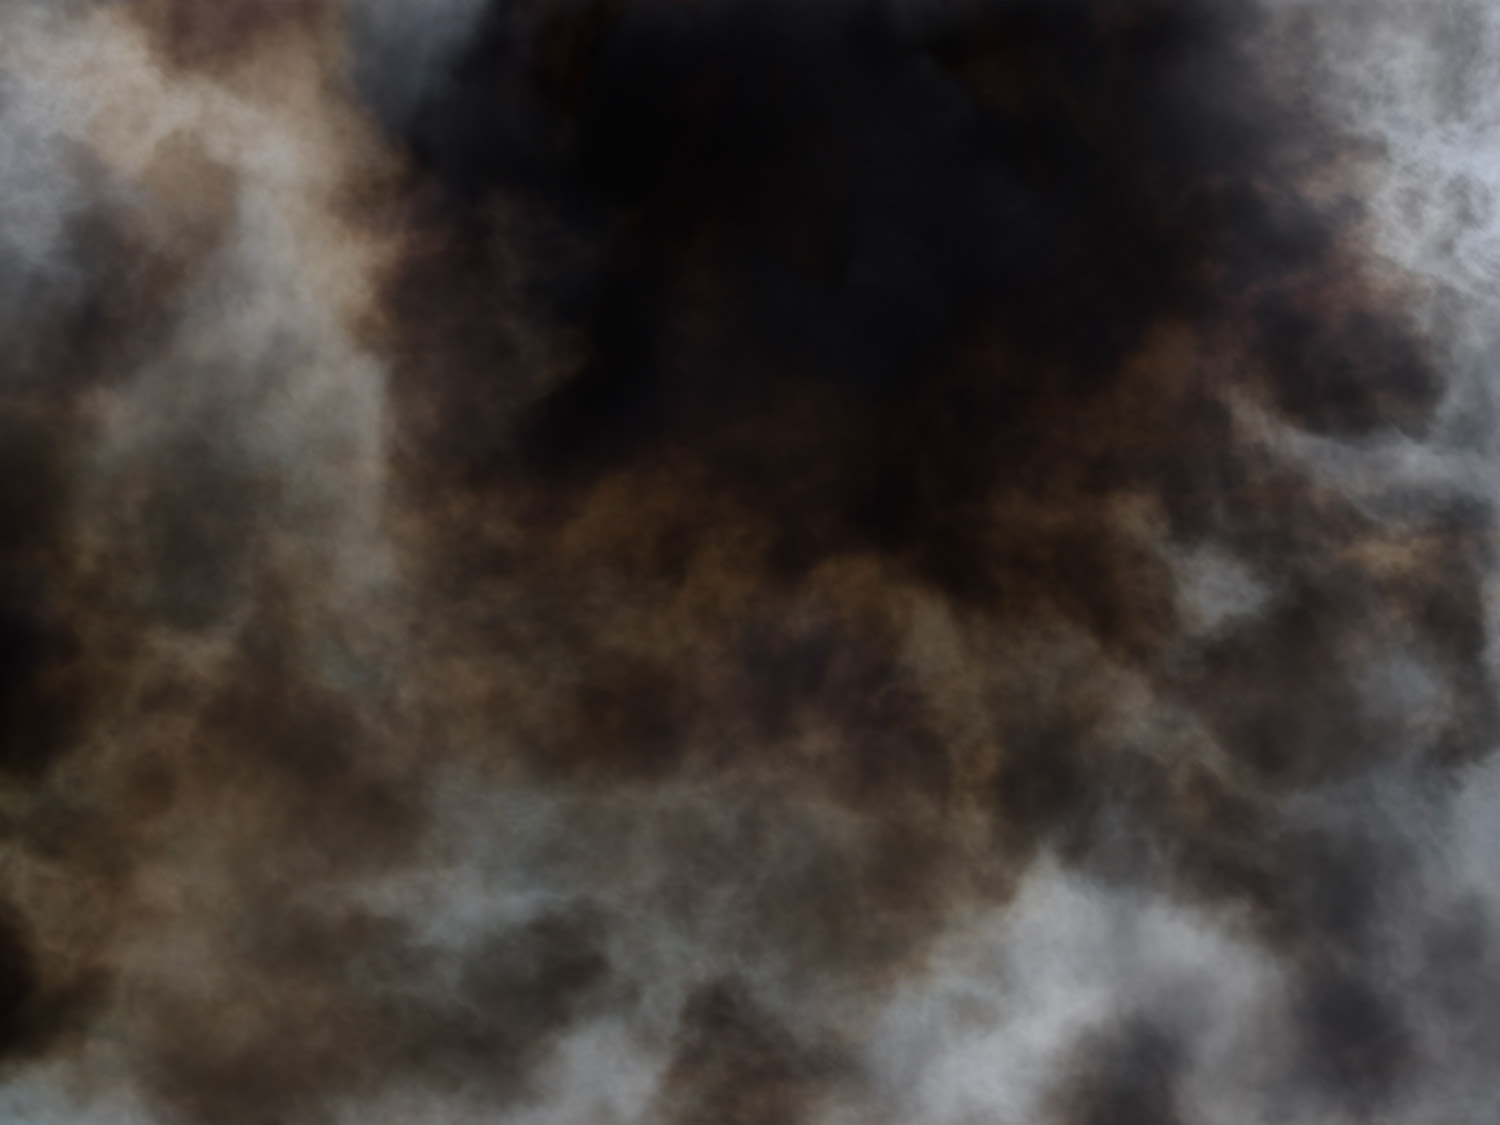 Abstract smoke from a fire by photograper Kenneth Rimm